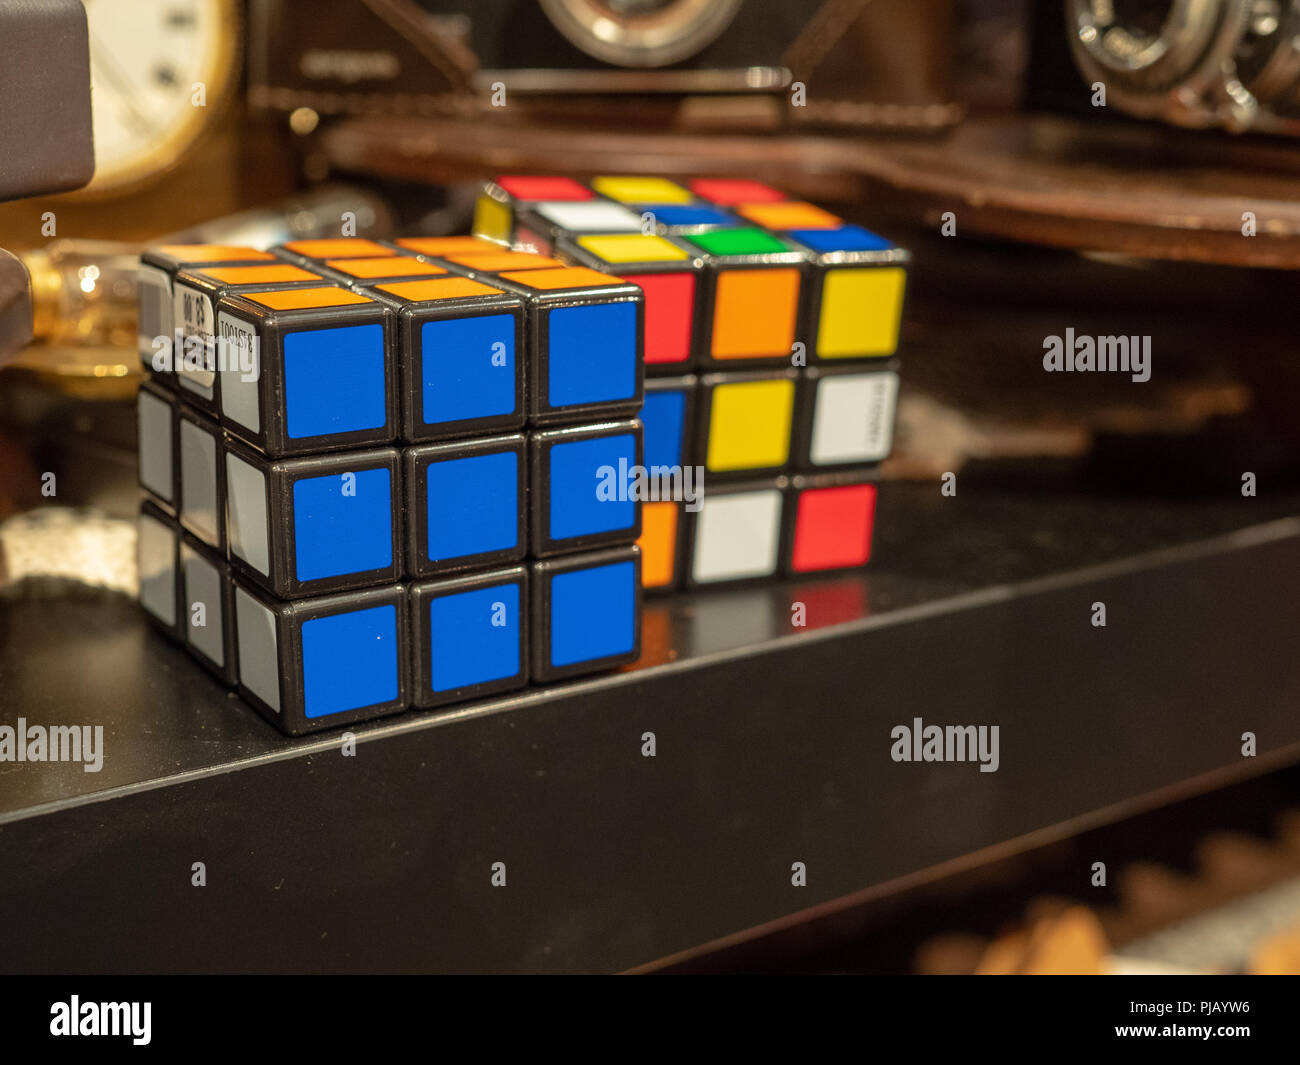 Two Rubik's cubes sitting for sale in an antique store around other oddities  - Stock Image